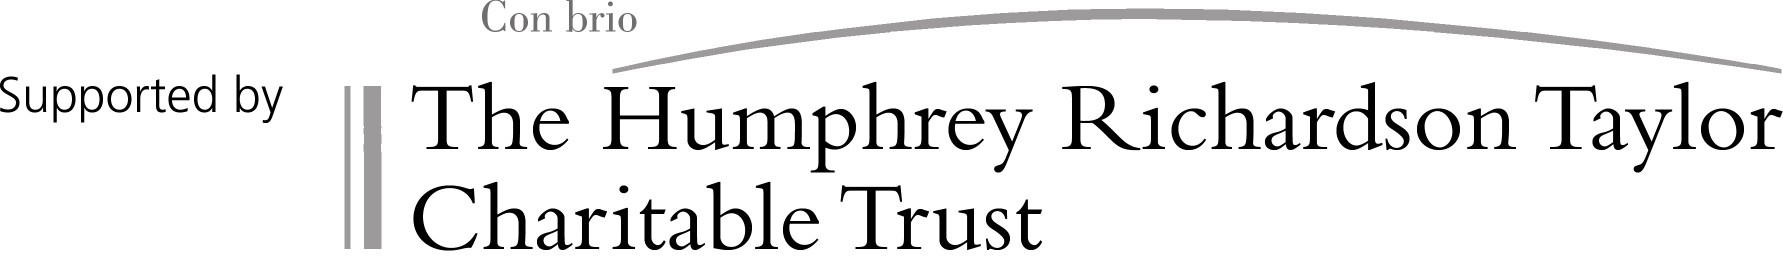 Logo of The Humphrey Richardson Taylor Charitable Trust